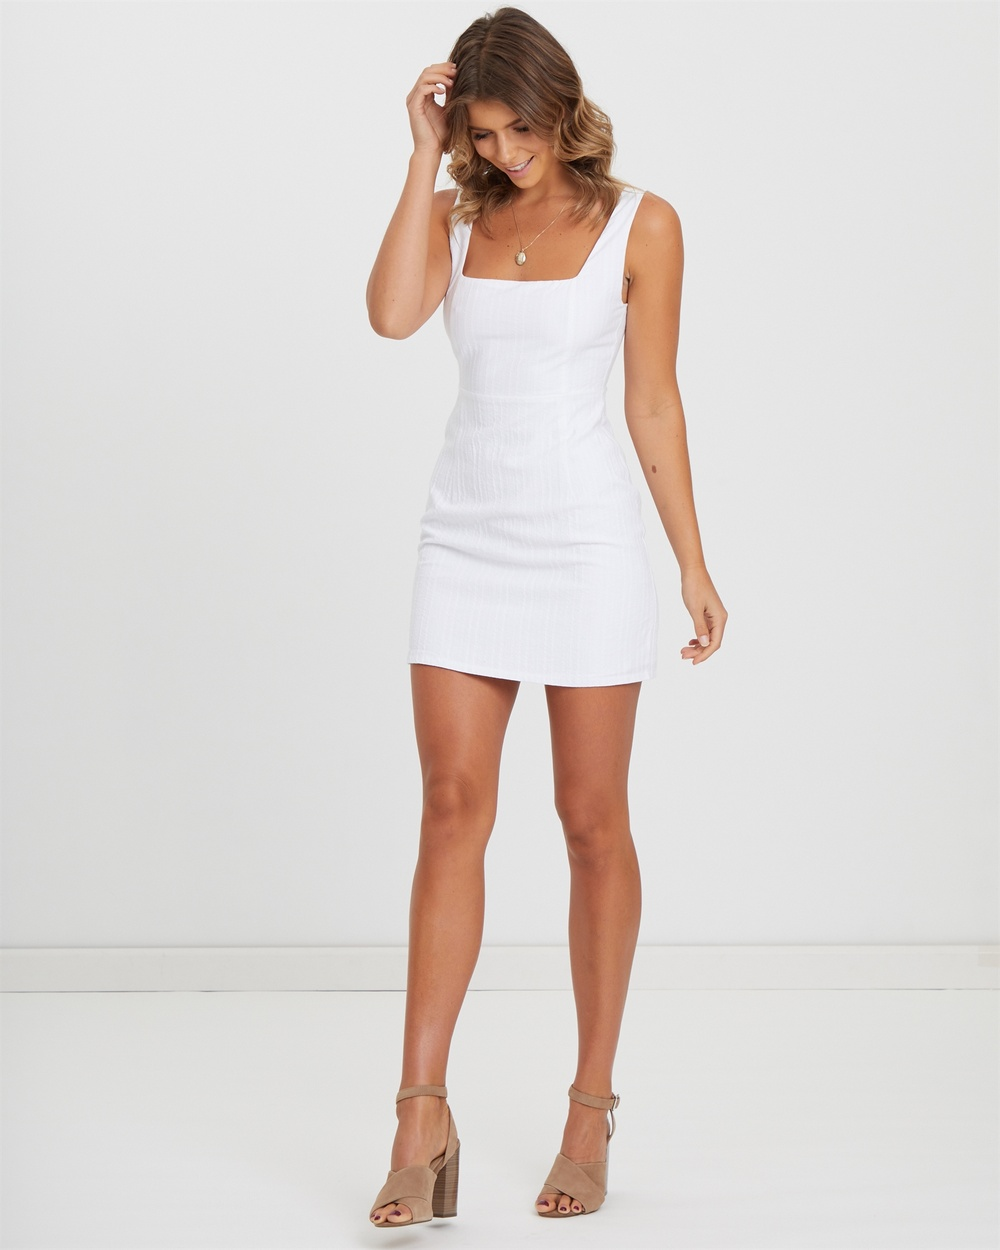 Photo of Atmos & Here White Square Neckline Textured Cotton Mini - beautiful dress from Atmos & Here online